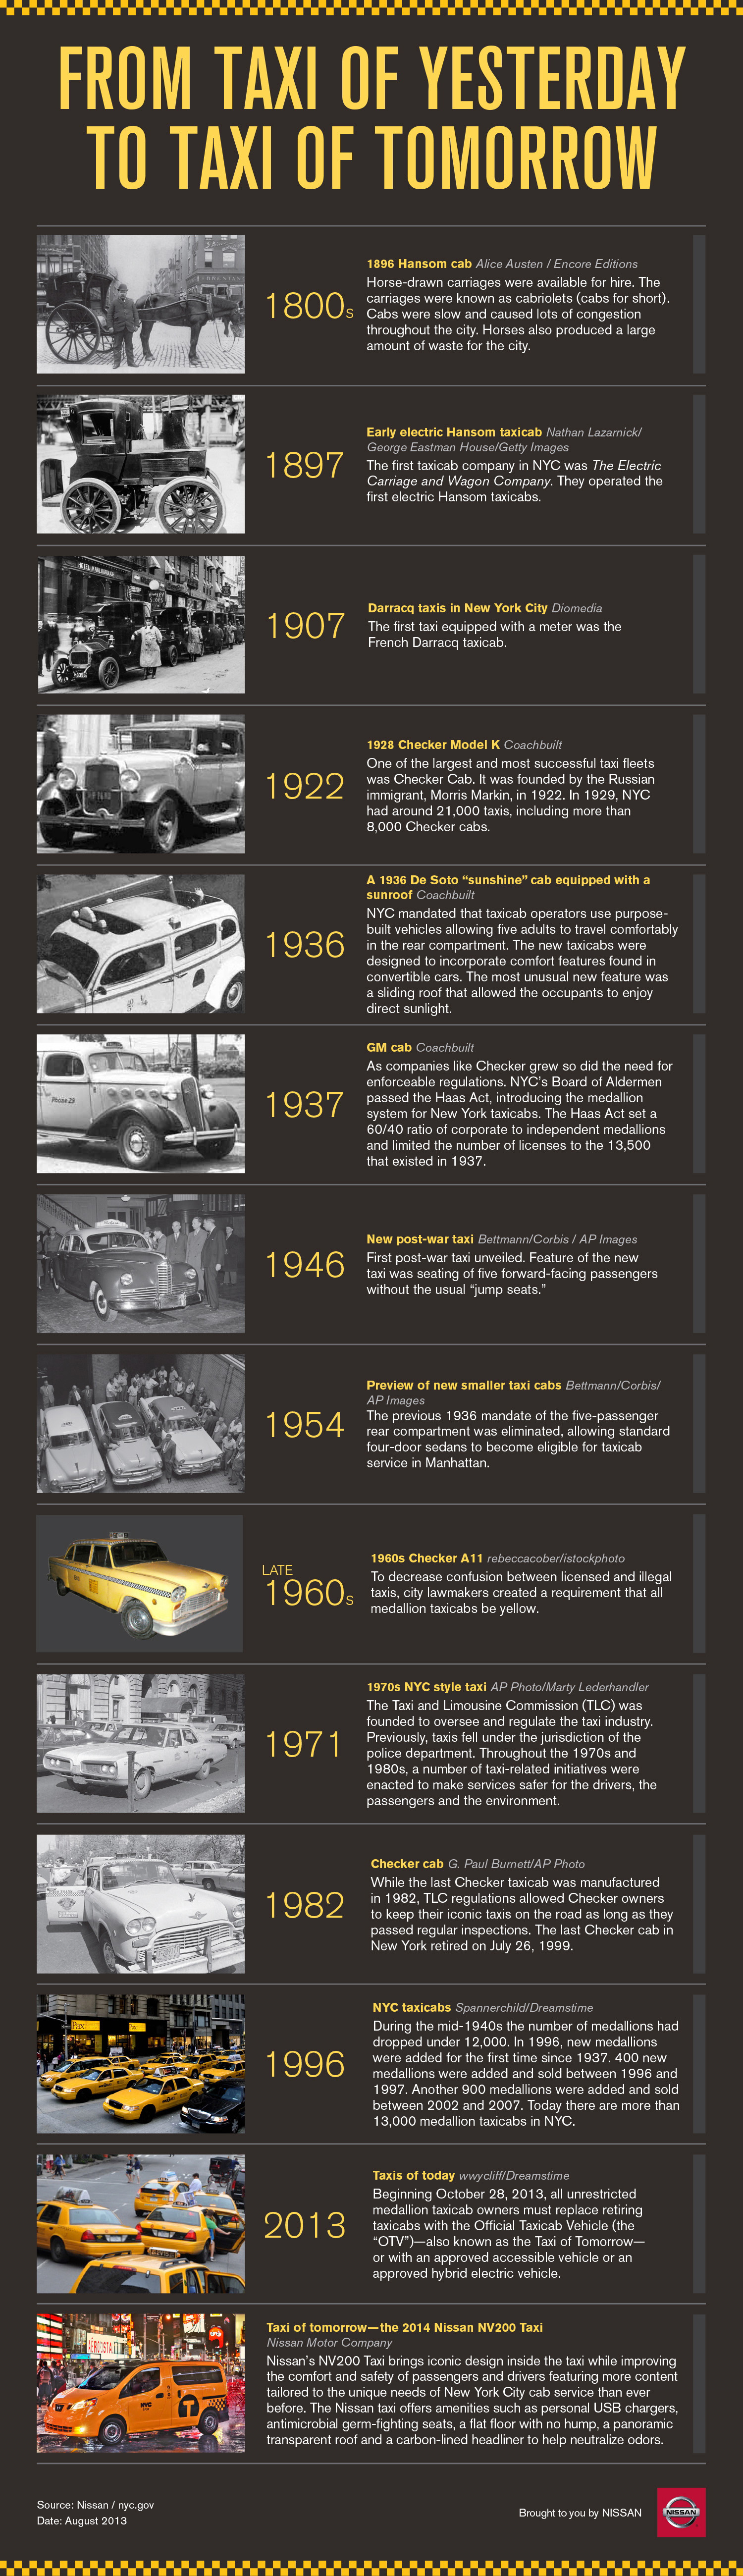 INFOGRAPHIC: From Taxi of Yesterday to Taxi of Tomorrow